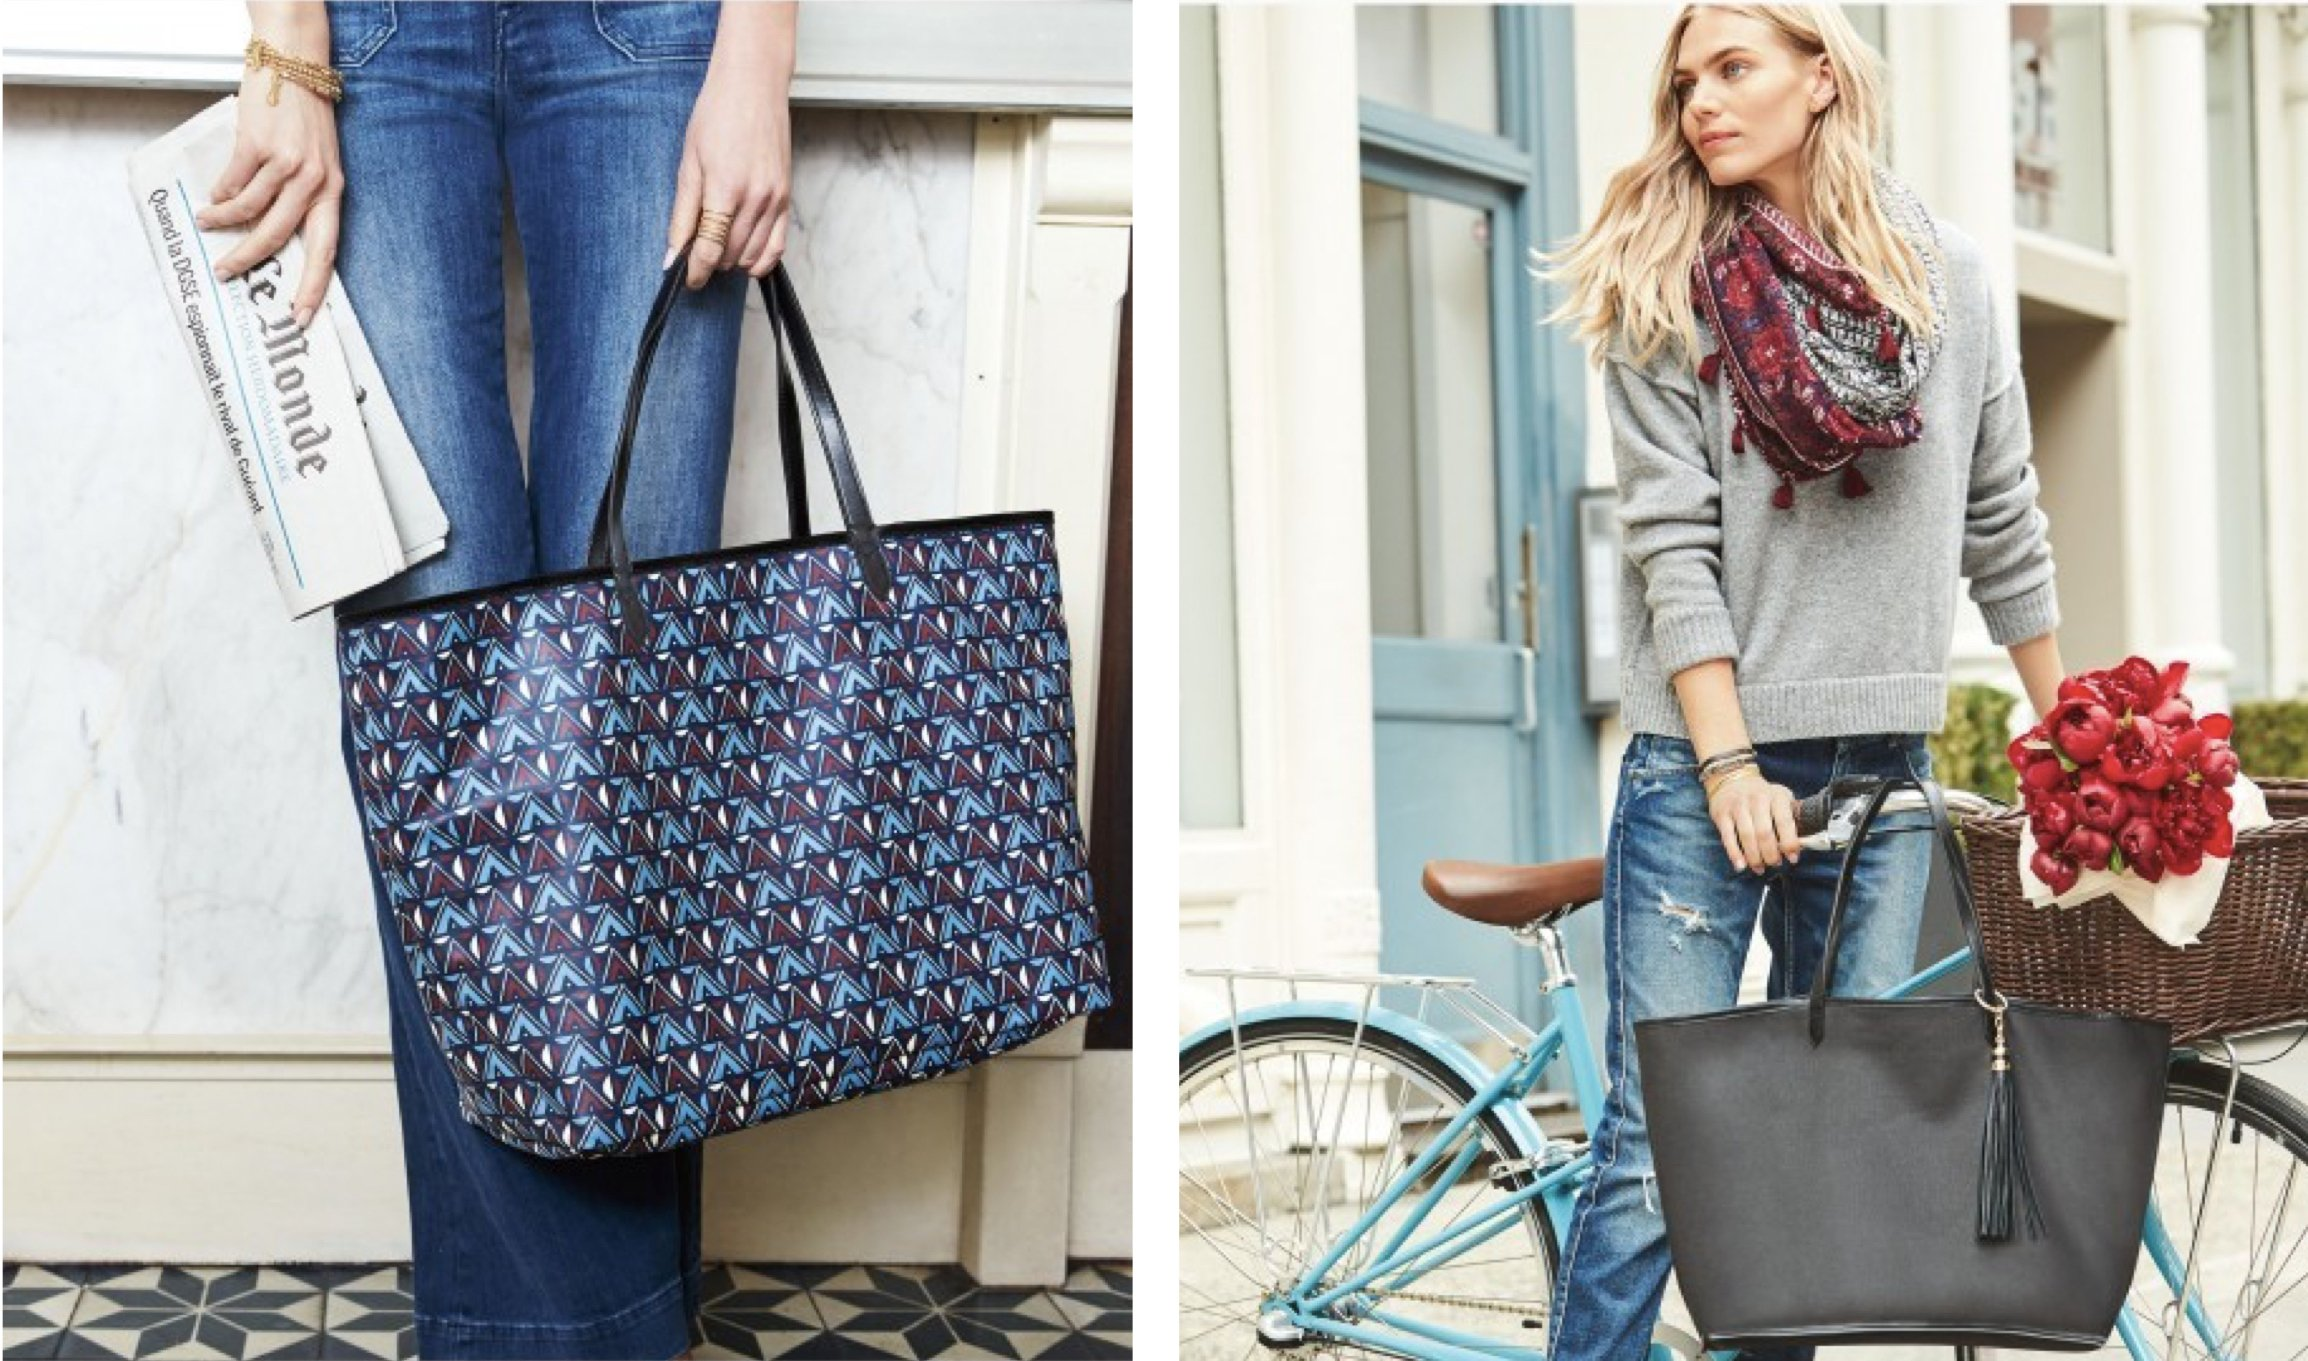 Reversible Voyage Tote in Black & Tribal Prints